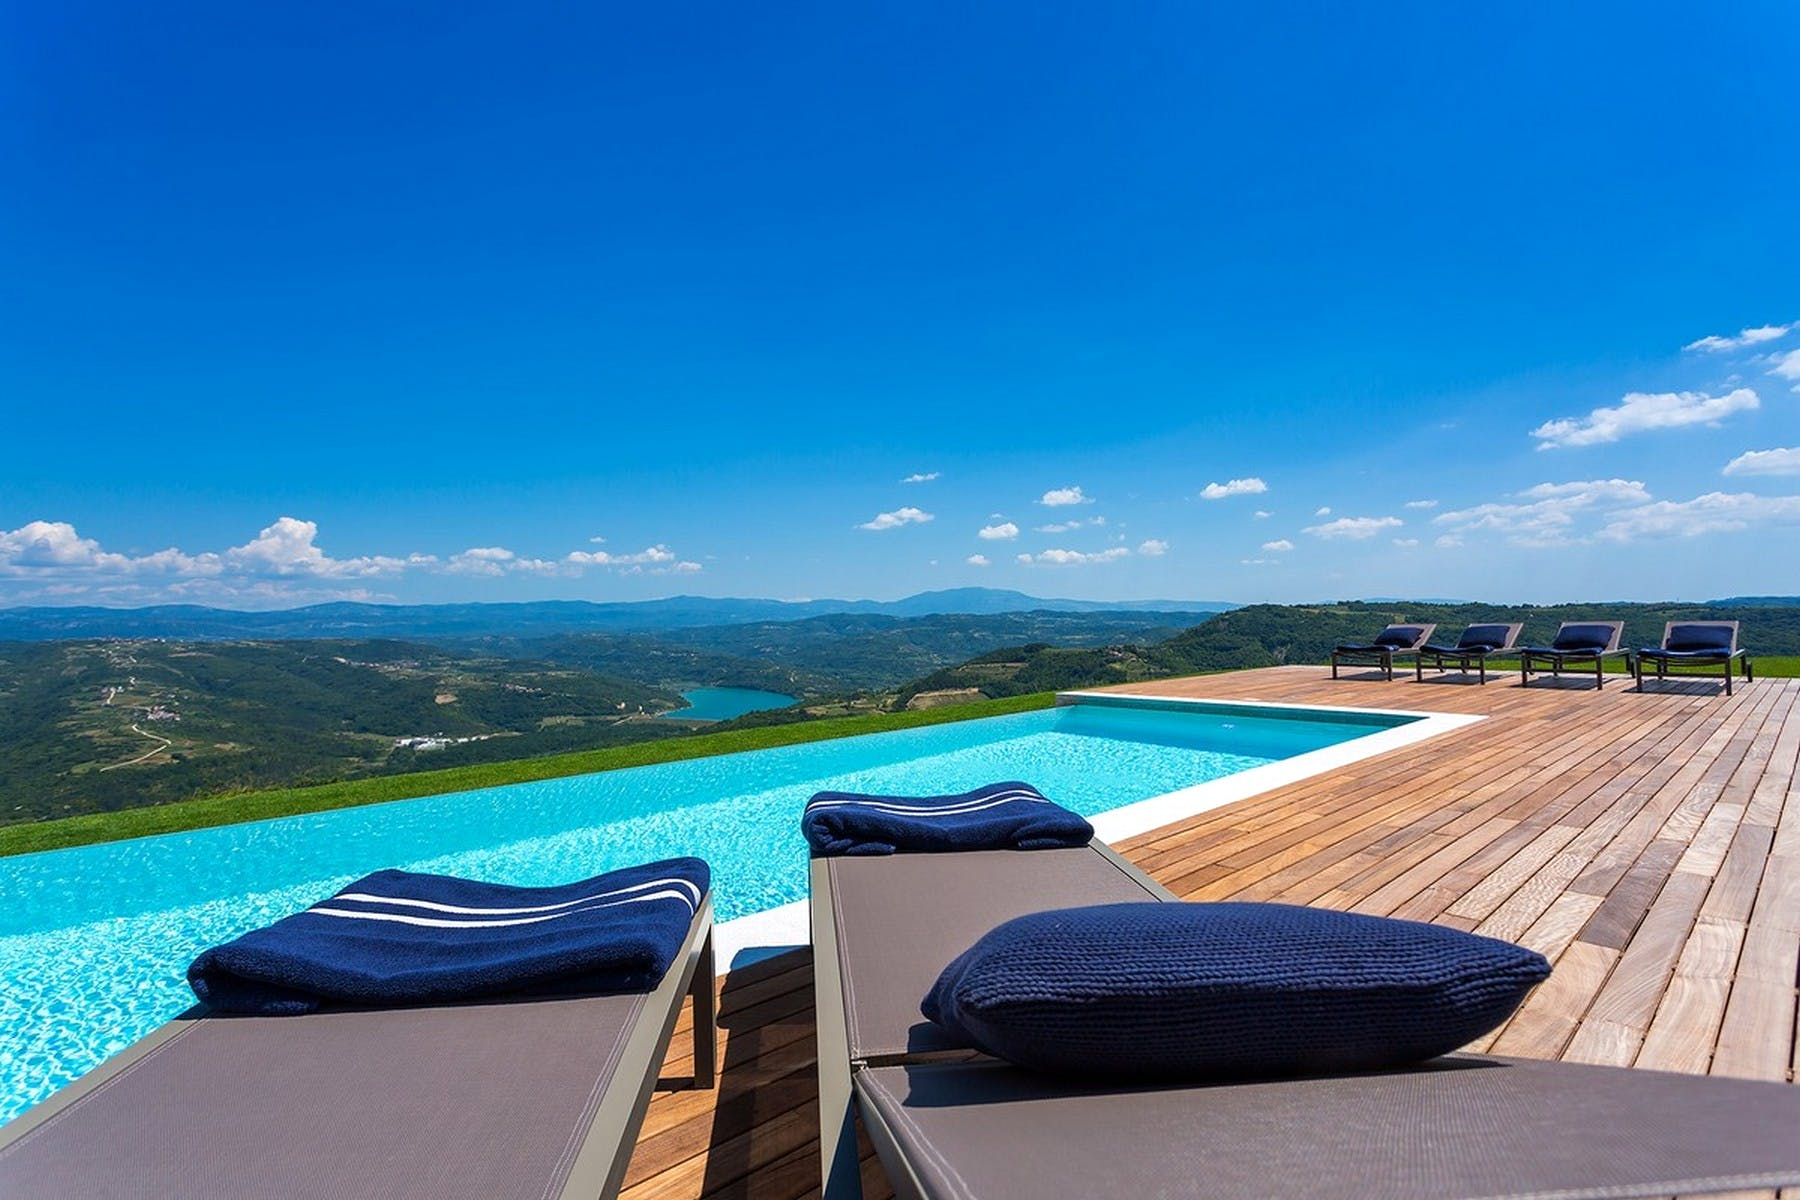 View of the pool from the sunbathing area